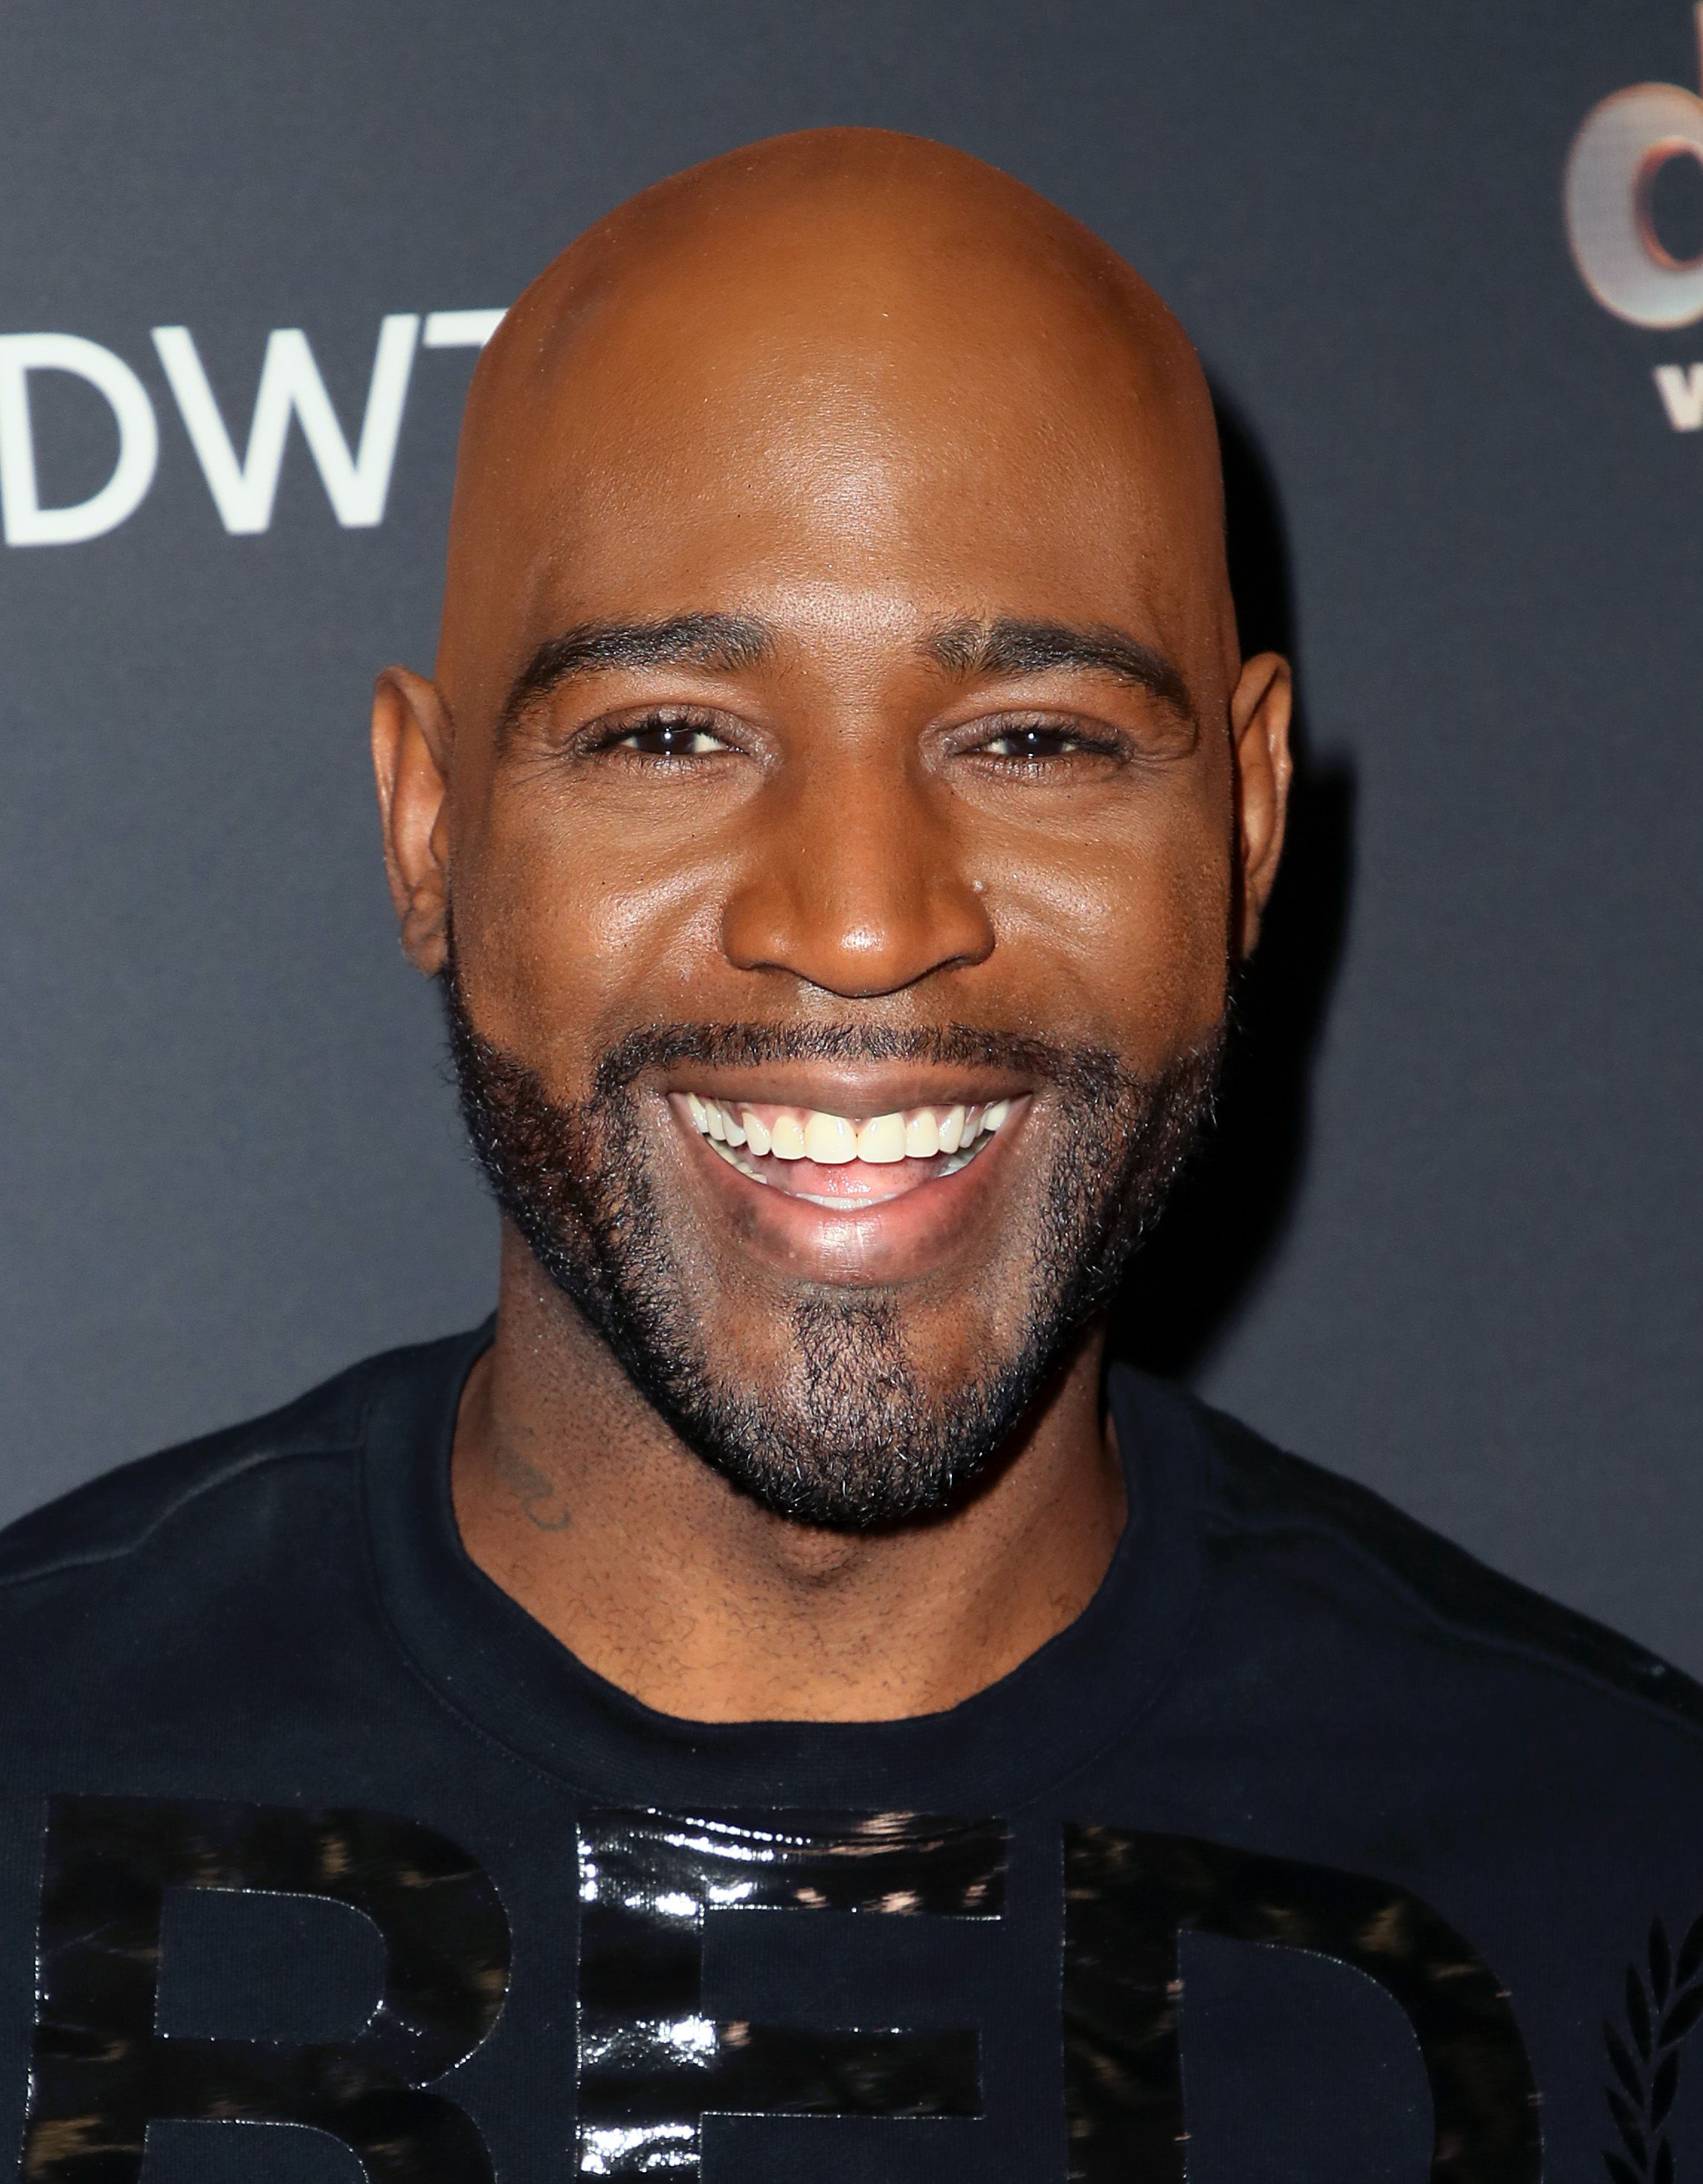 Karamo Brown managed to overcome the difficult times / Getty Images